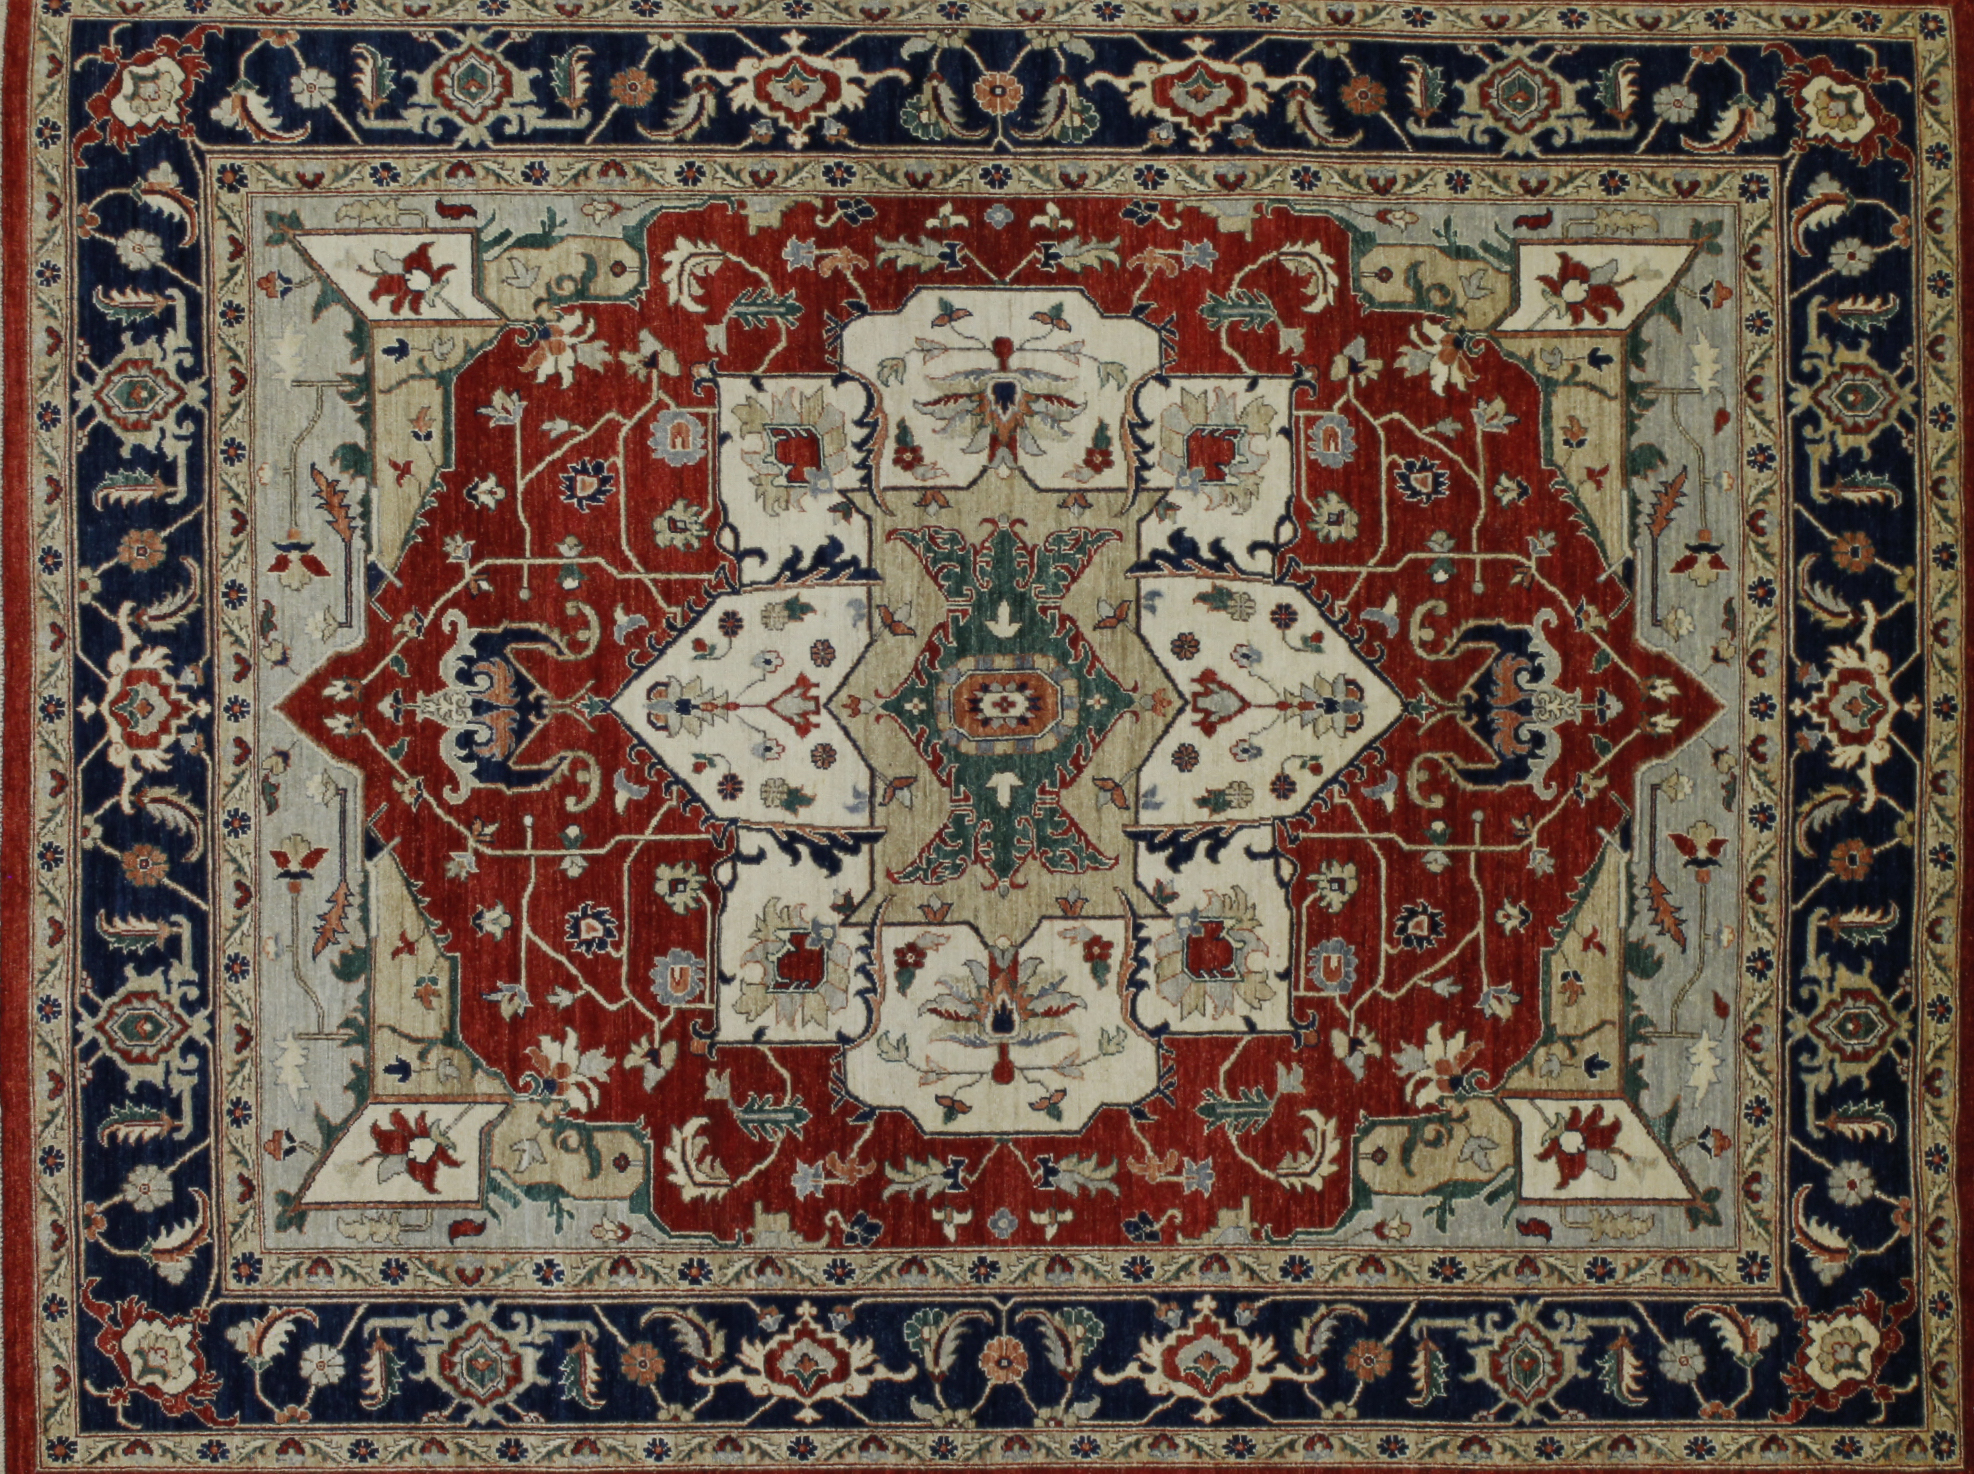 8x10 Peshawar Hand Knotted Wool Area Rug - MR022579